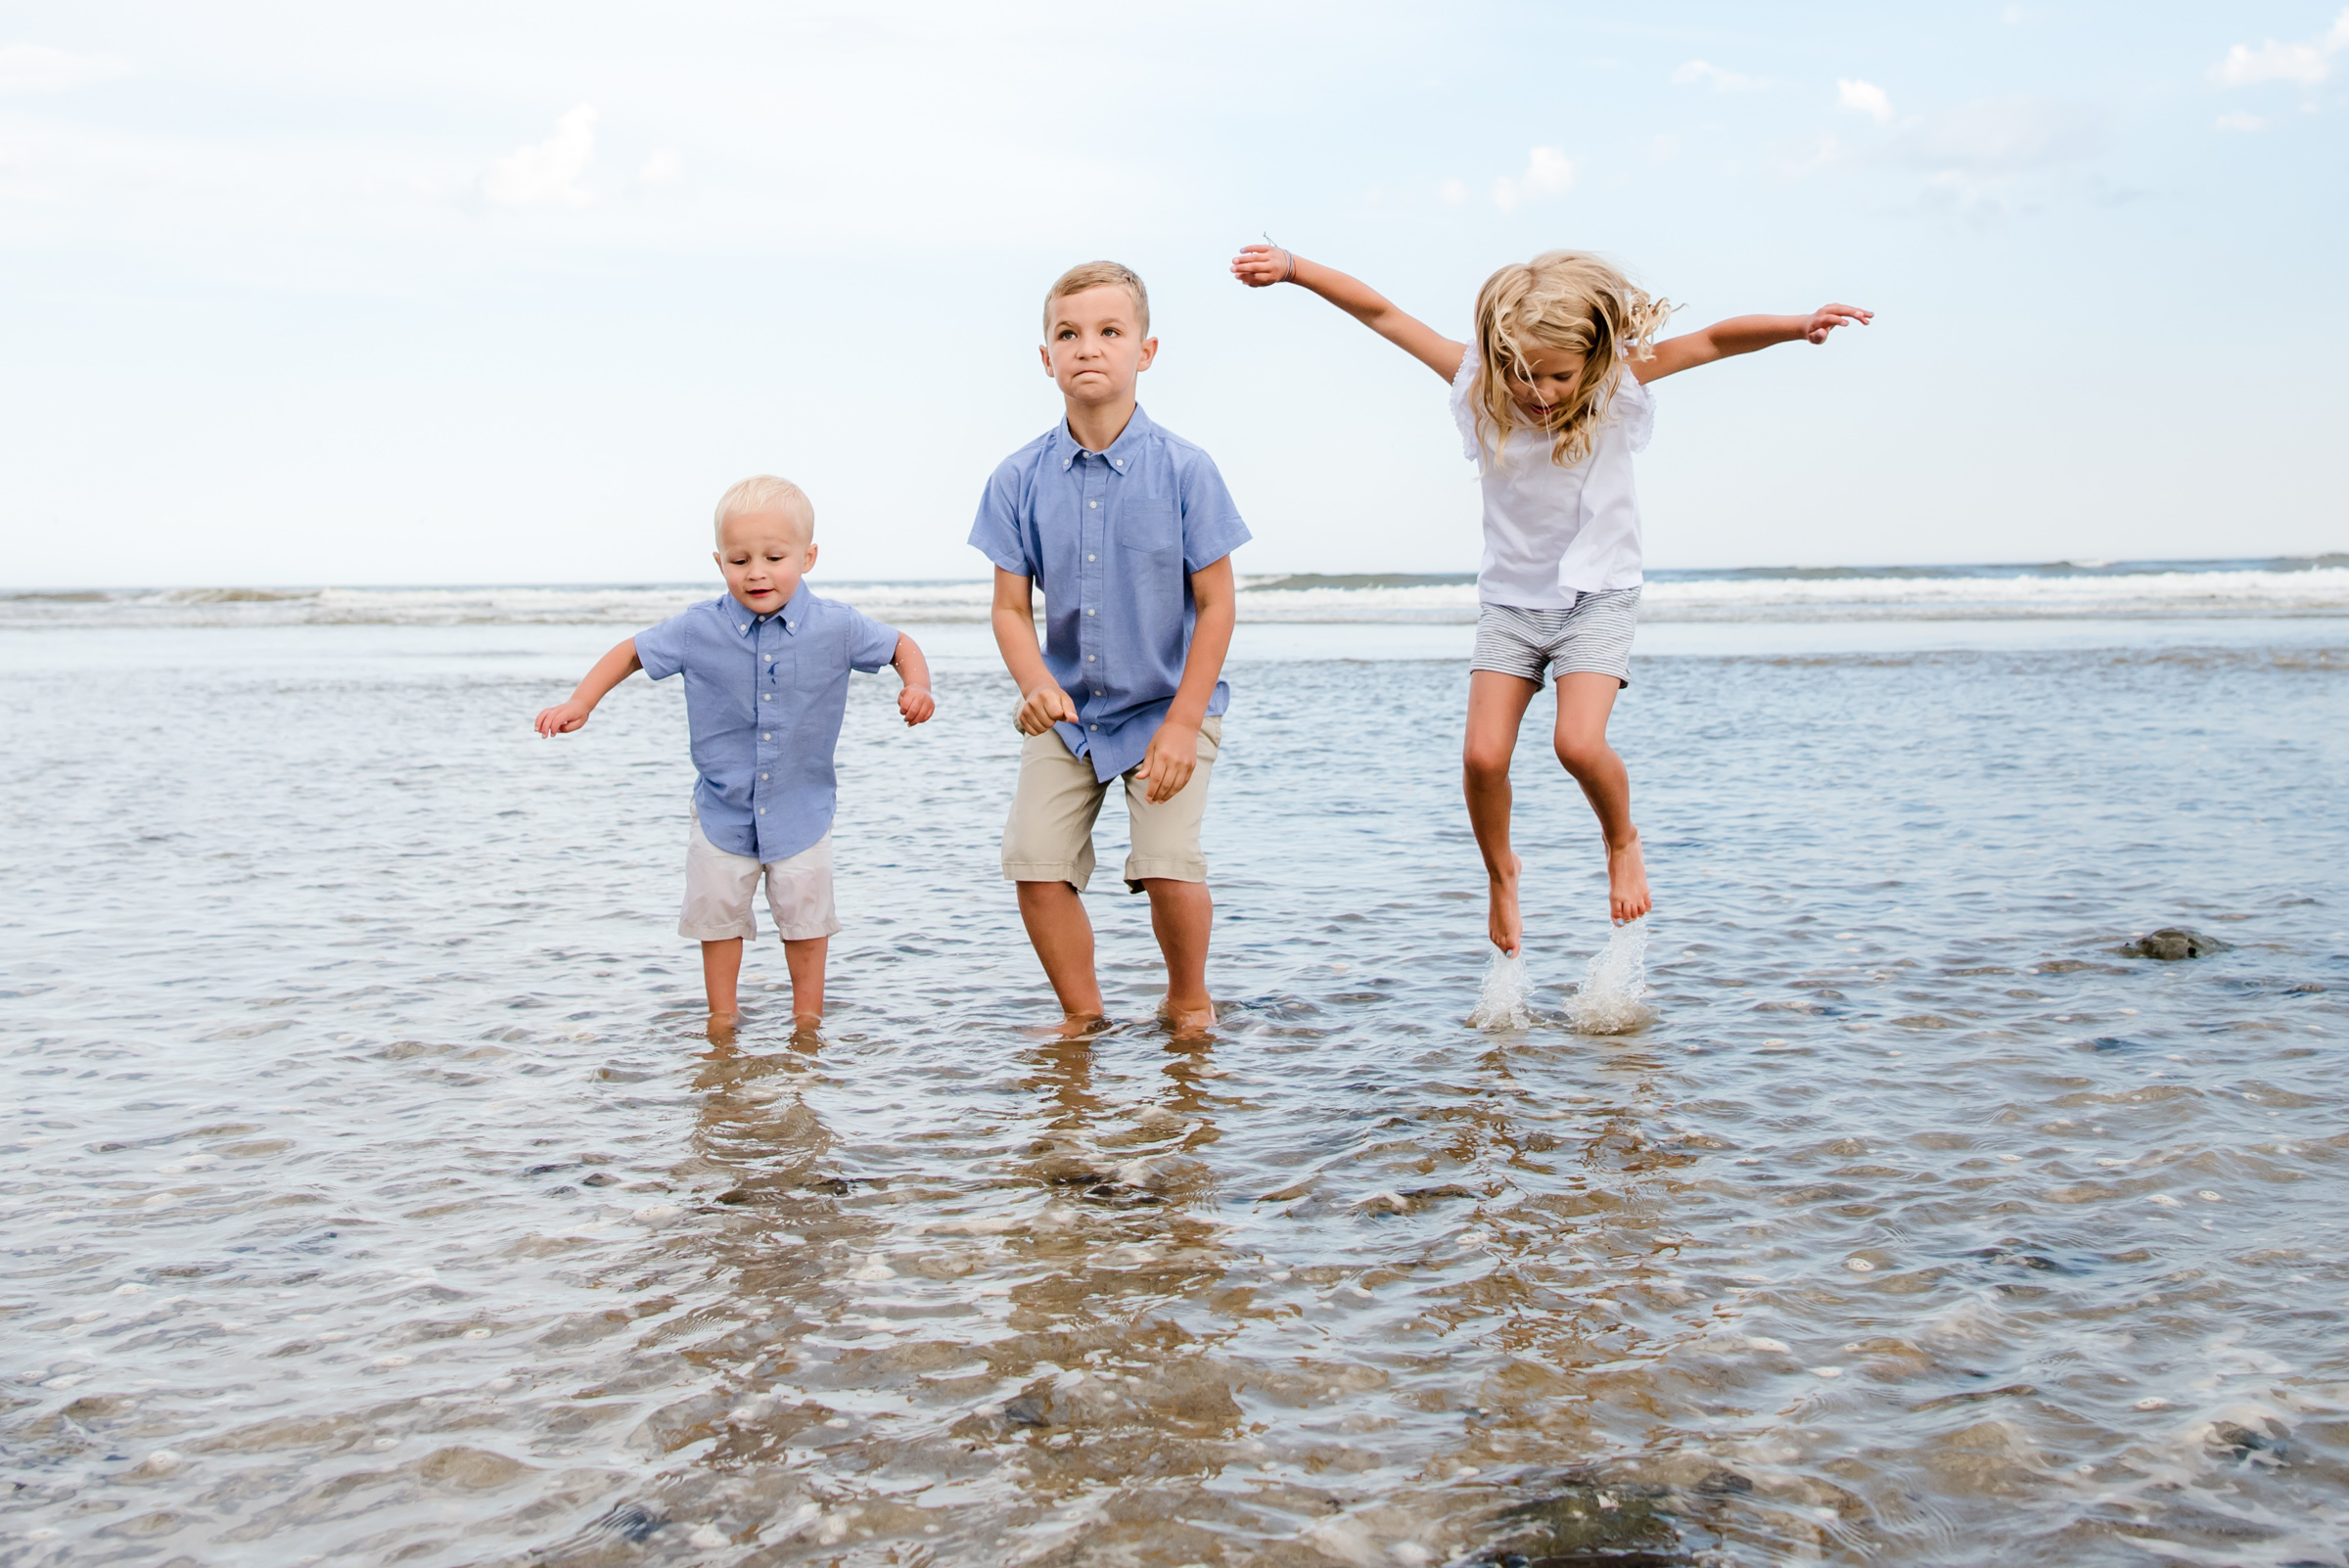 Familybeachsession.Patienceclevelandphotography.kennebunk.maine.b2018-8